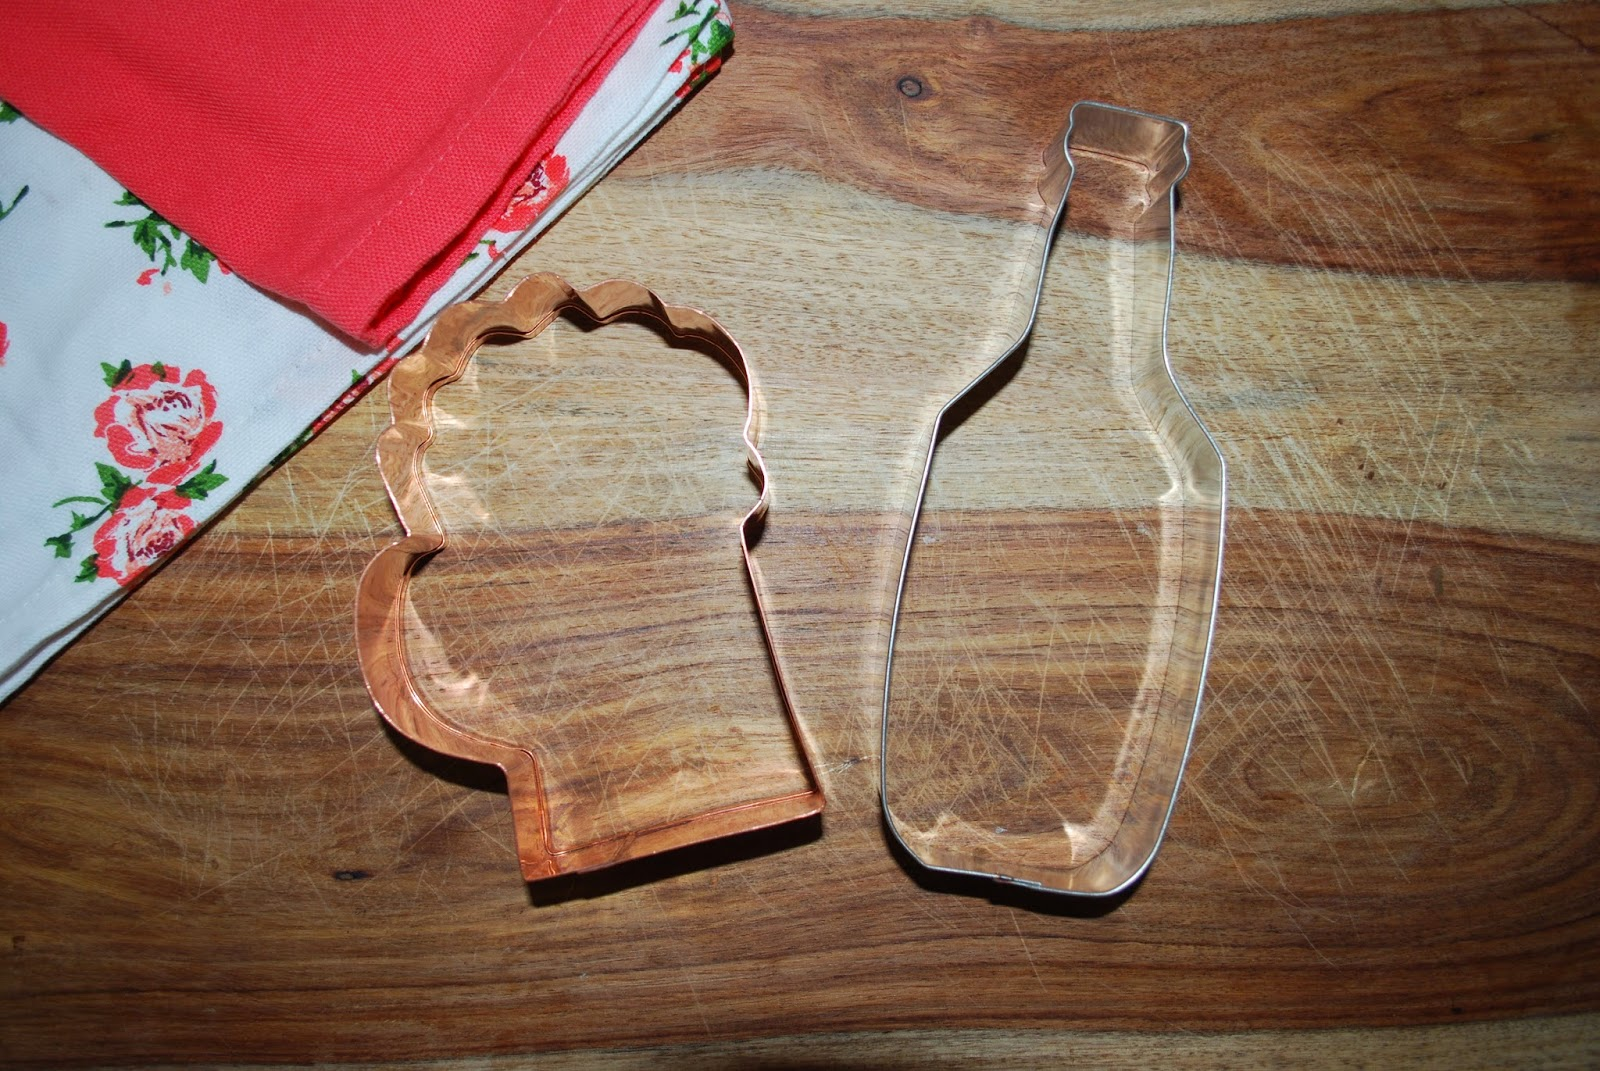 beer mug beer bottle cookie cutter